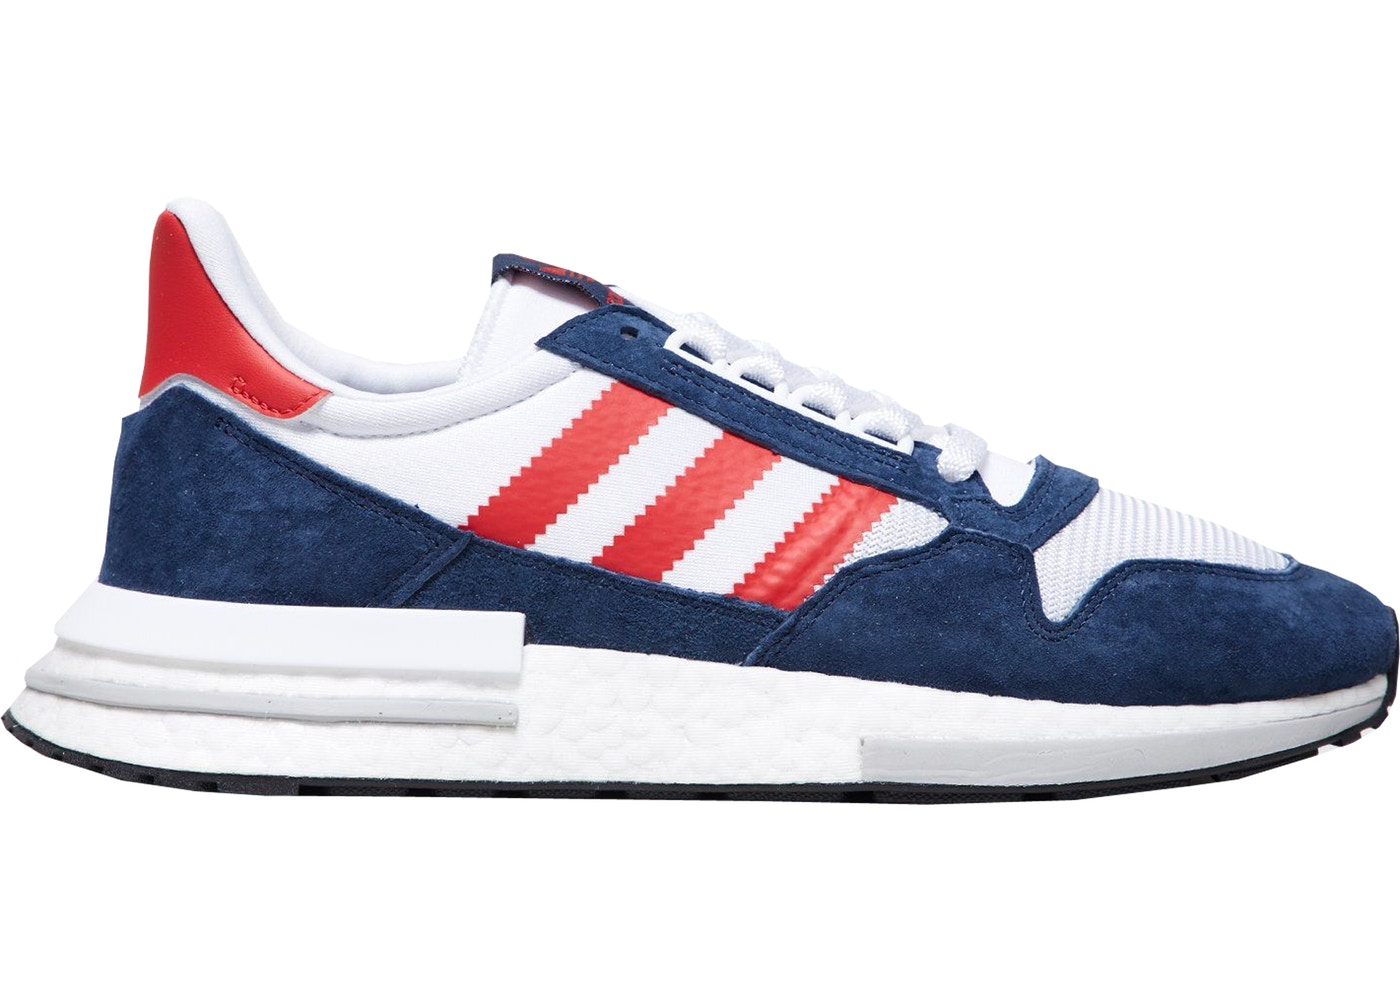 9ad0d0ecfc58dc Sell. or Ask. Size  9.5. View All Bids. adidas ZX 500 RM size  Navy Red  White